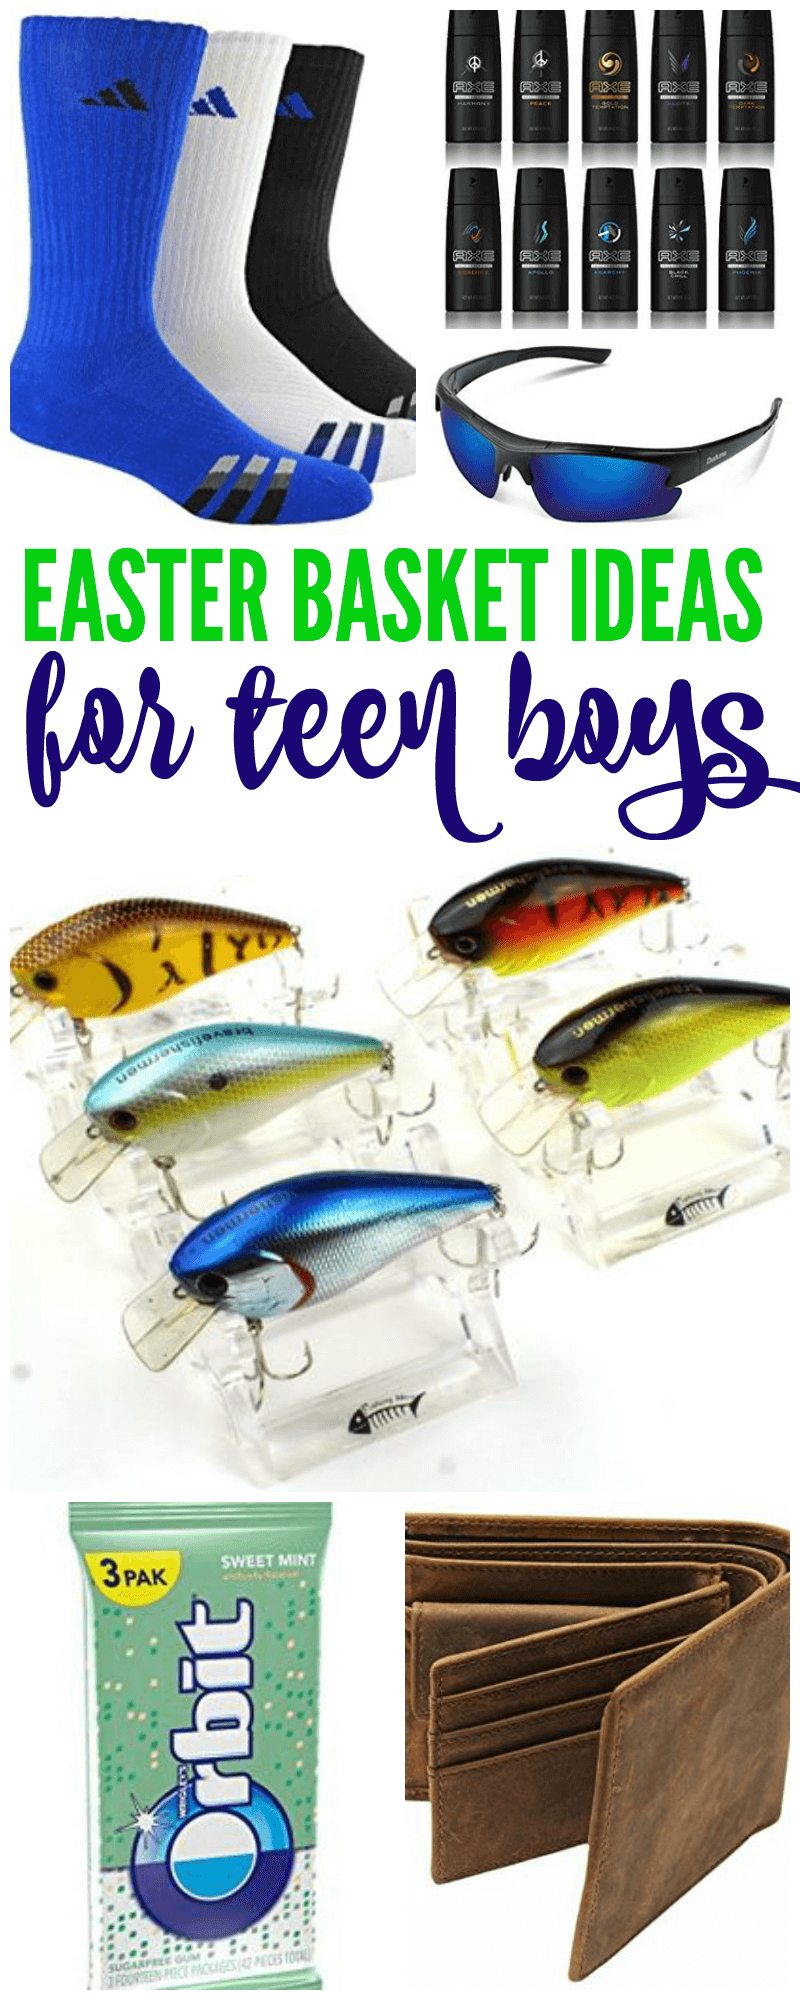 Teen boys easter baskets things that your teen boys will love to teen boys easter baskets things that your teen boys will love to get for easter negle Image collections